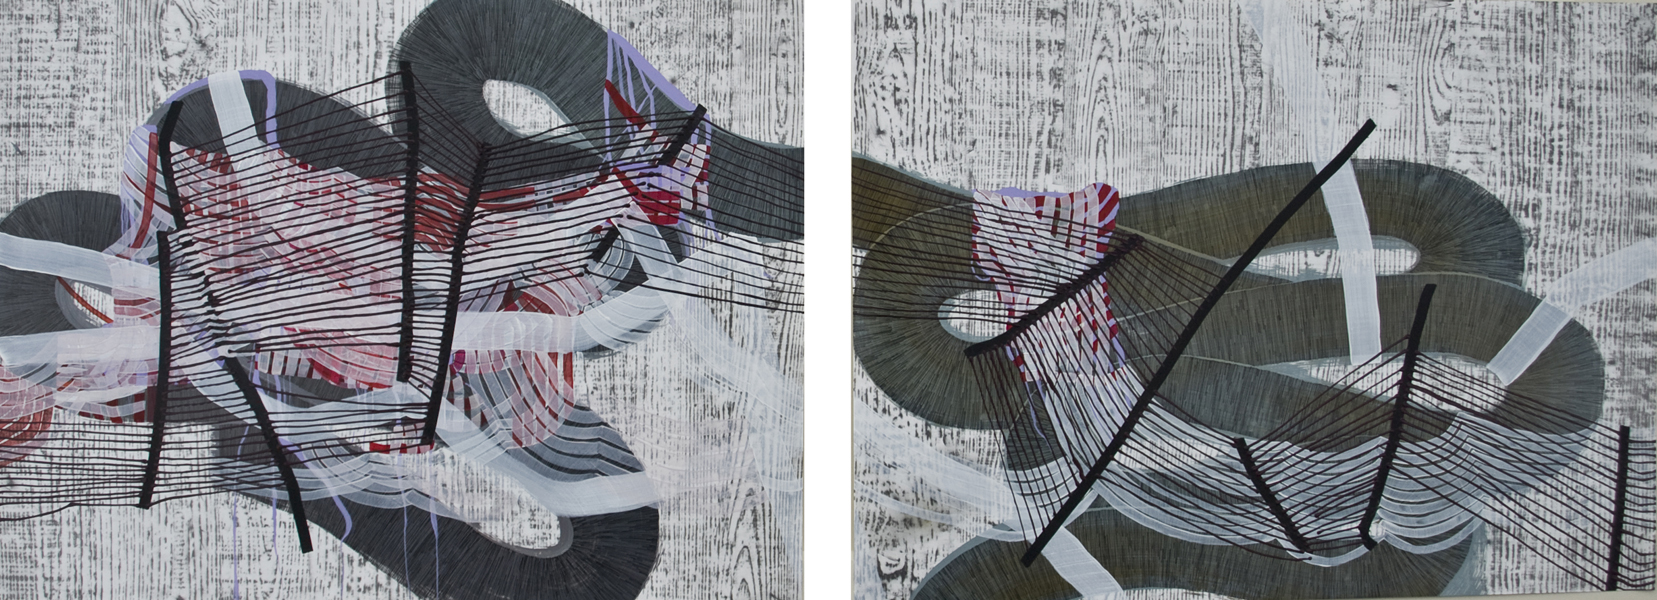 Roam (diptych), 2015, by Alyse Rosner, multicolor, serpentine, fine line and woodgrain pattern, graphite, ink and acrylic painting on yupo.